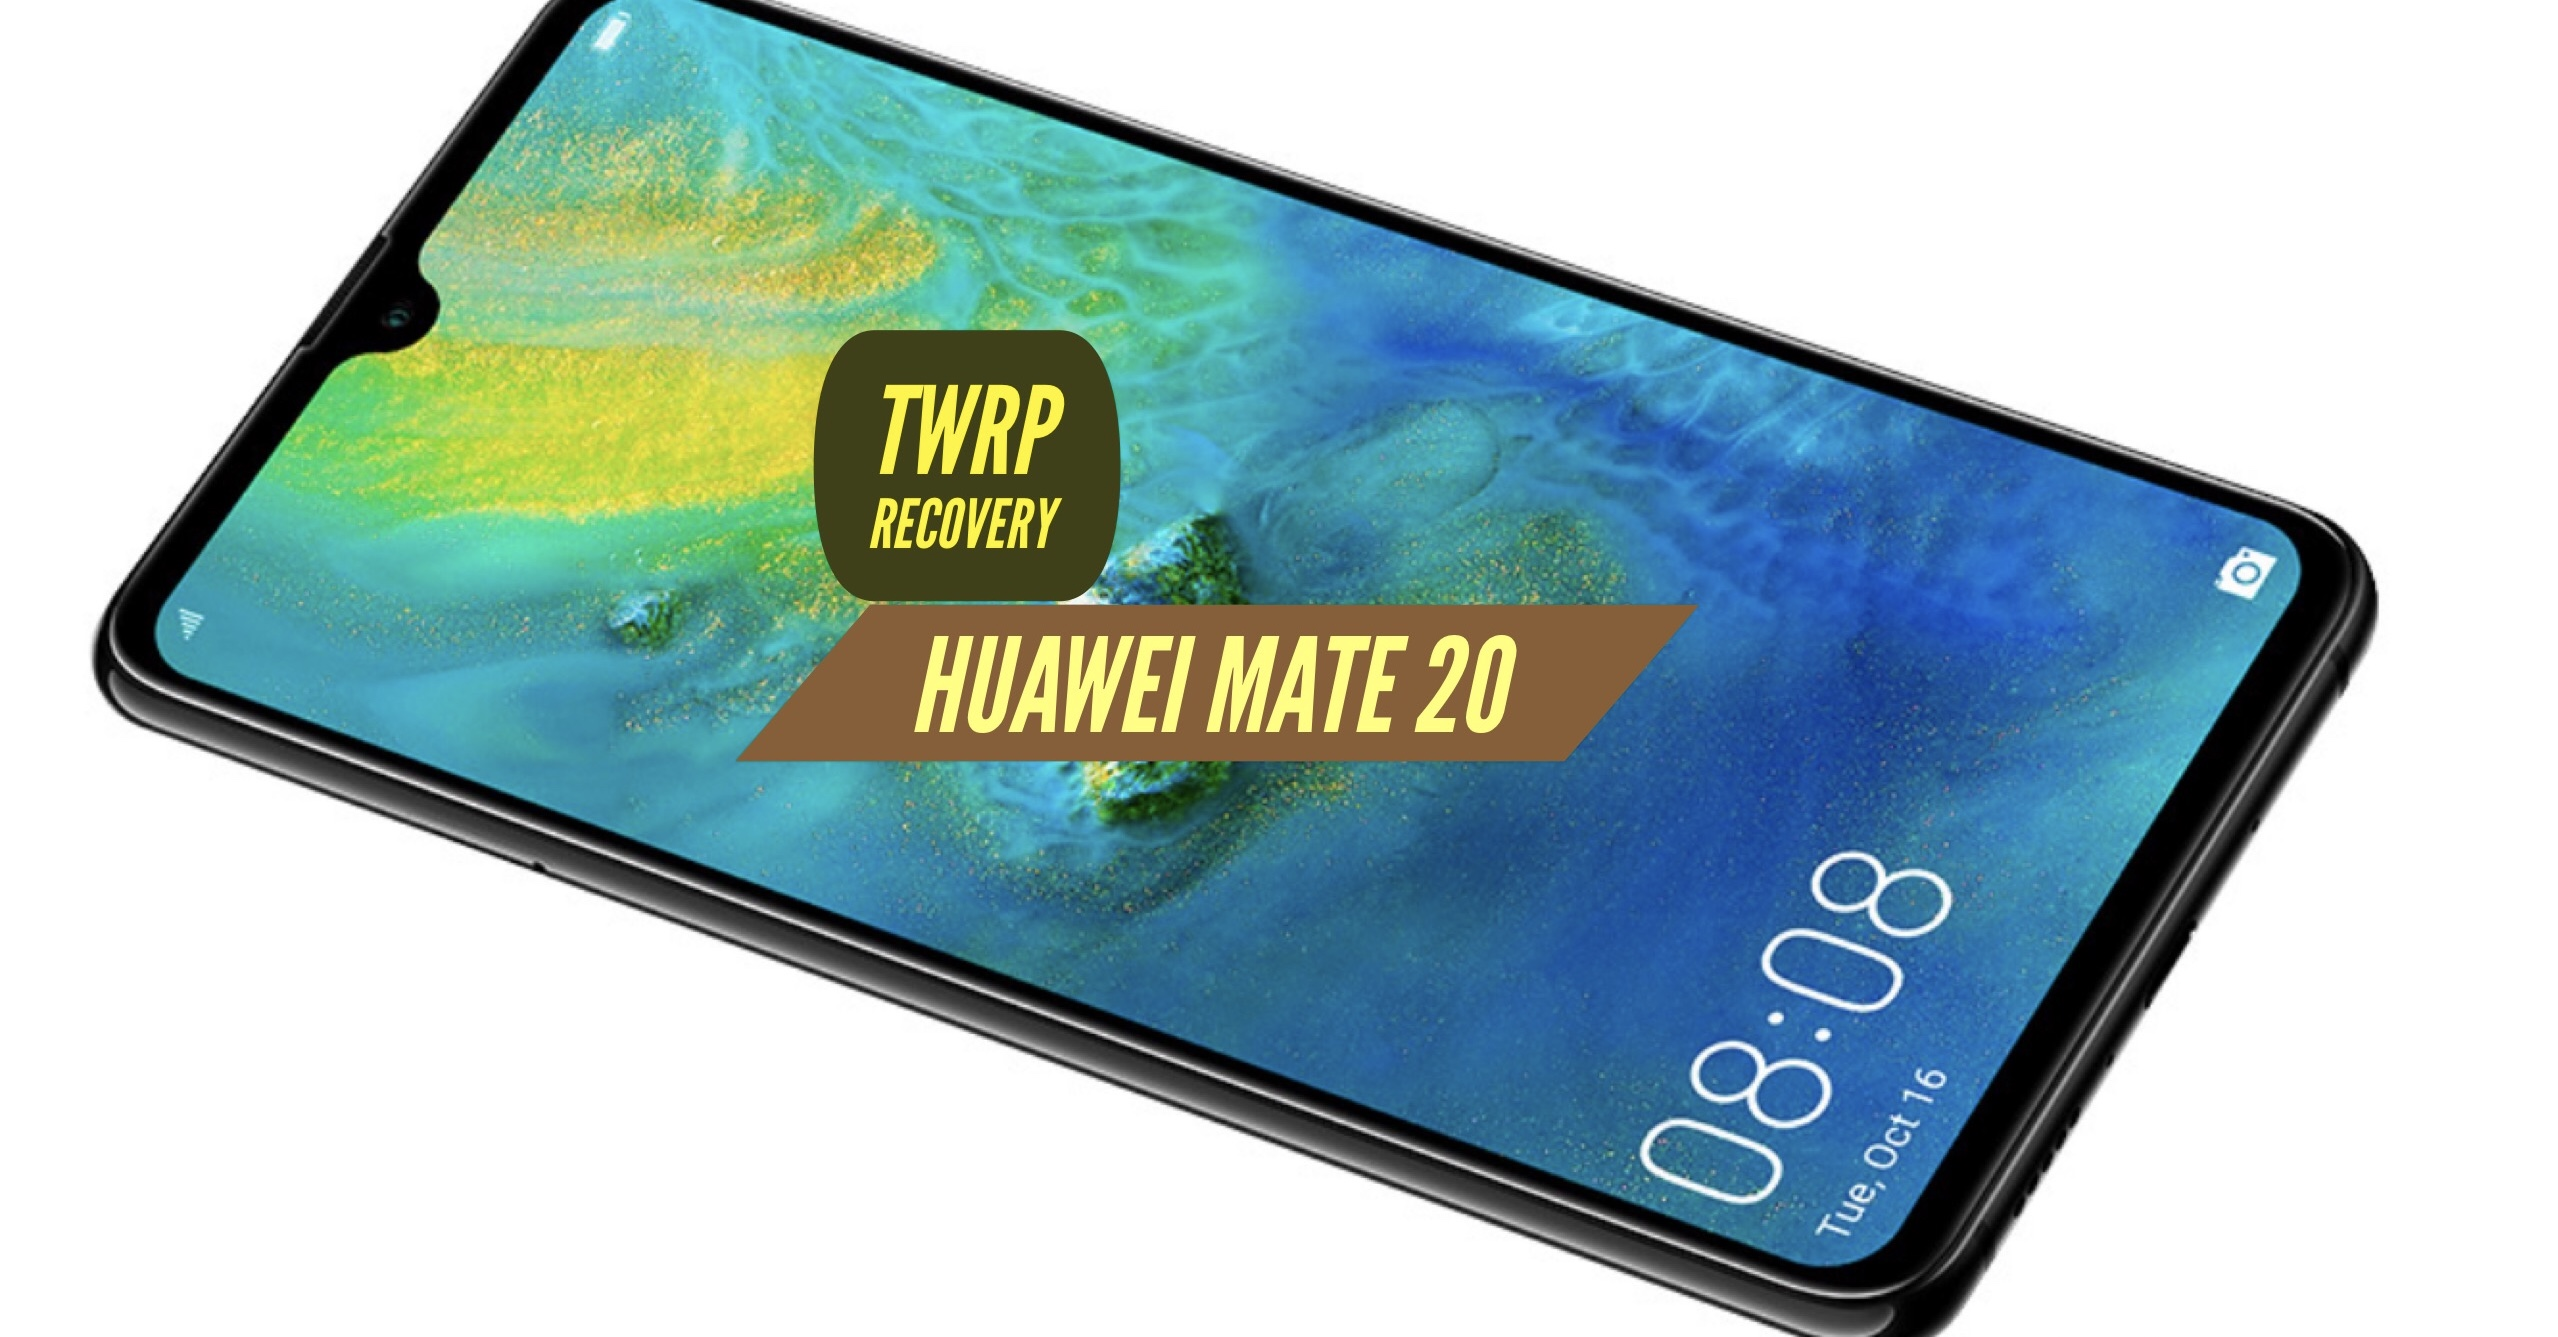 How to Install TWRP Recovery on Huawei Mate 20?